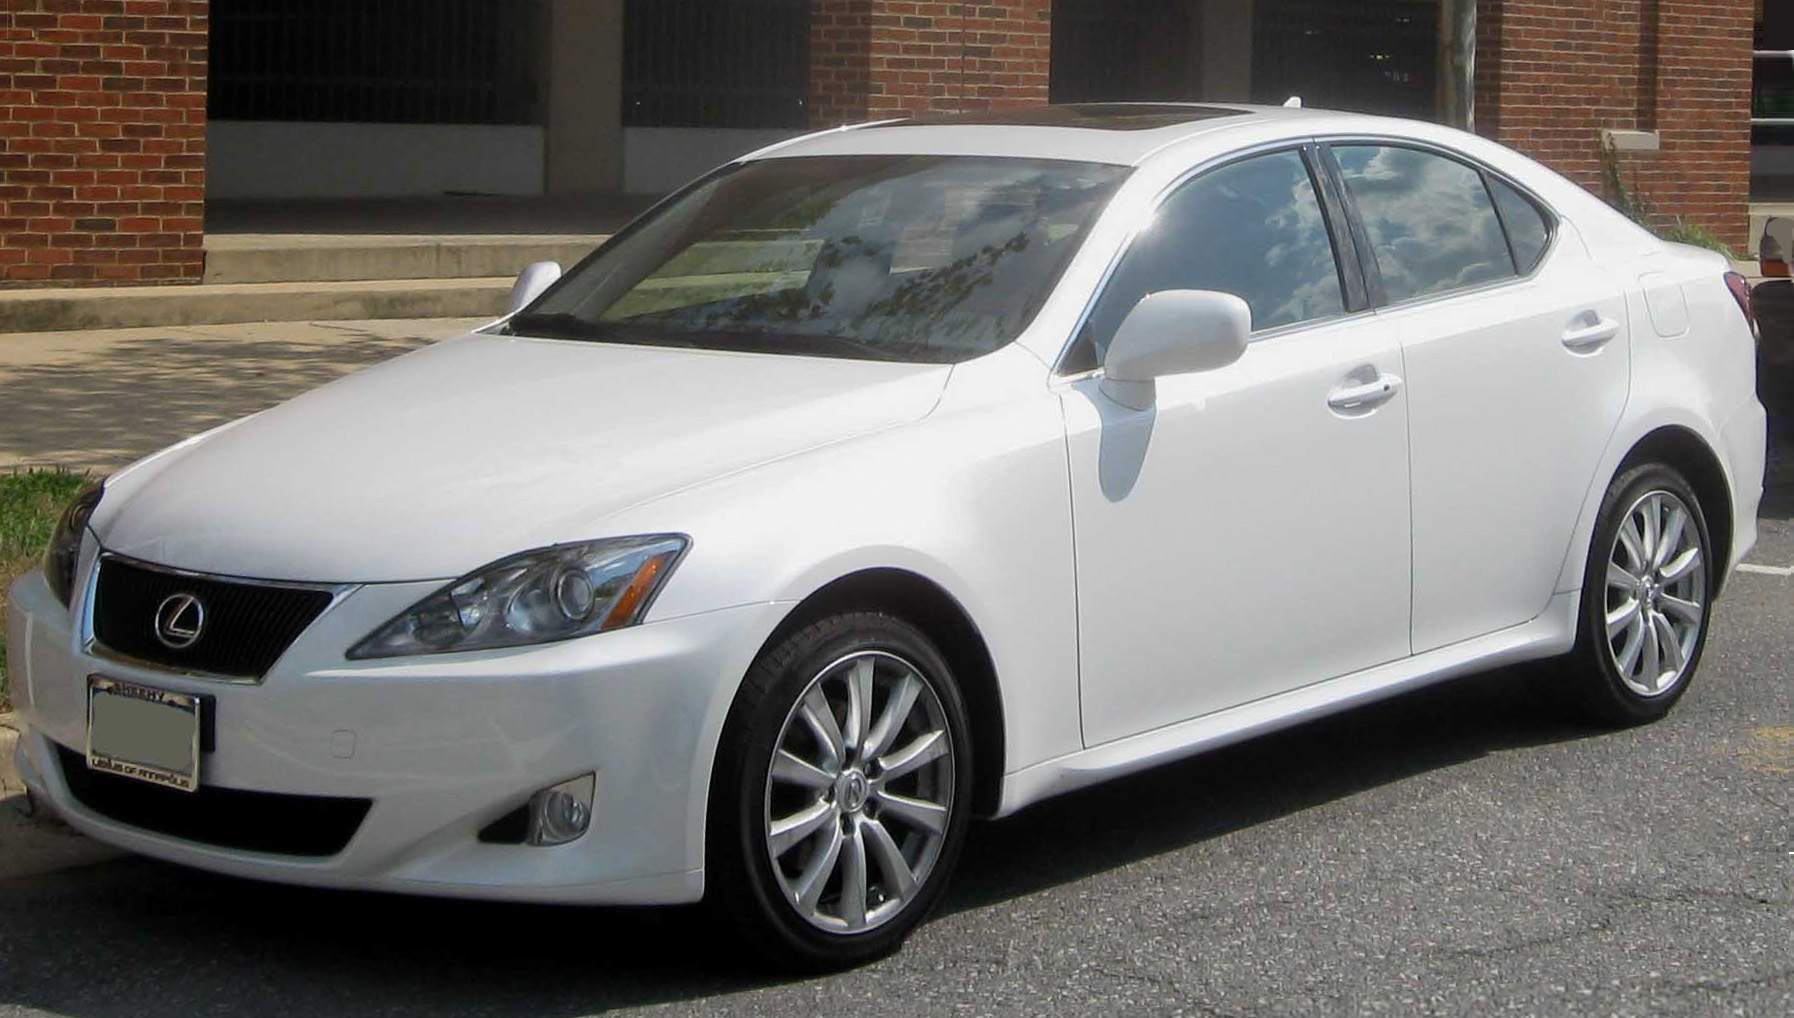 2008 lexus is 250 information and photos zombiedrive. Black Bedroom Furniture Sets. Home Design Ideas